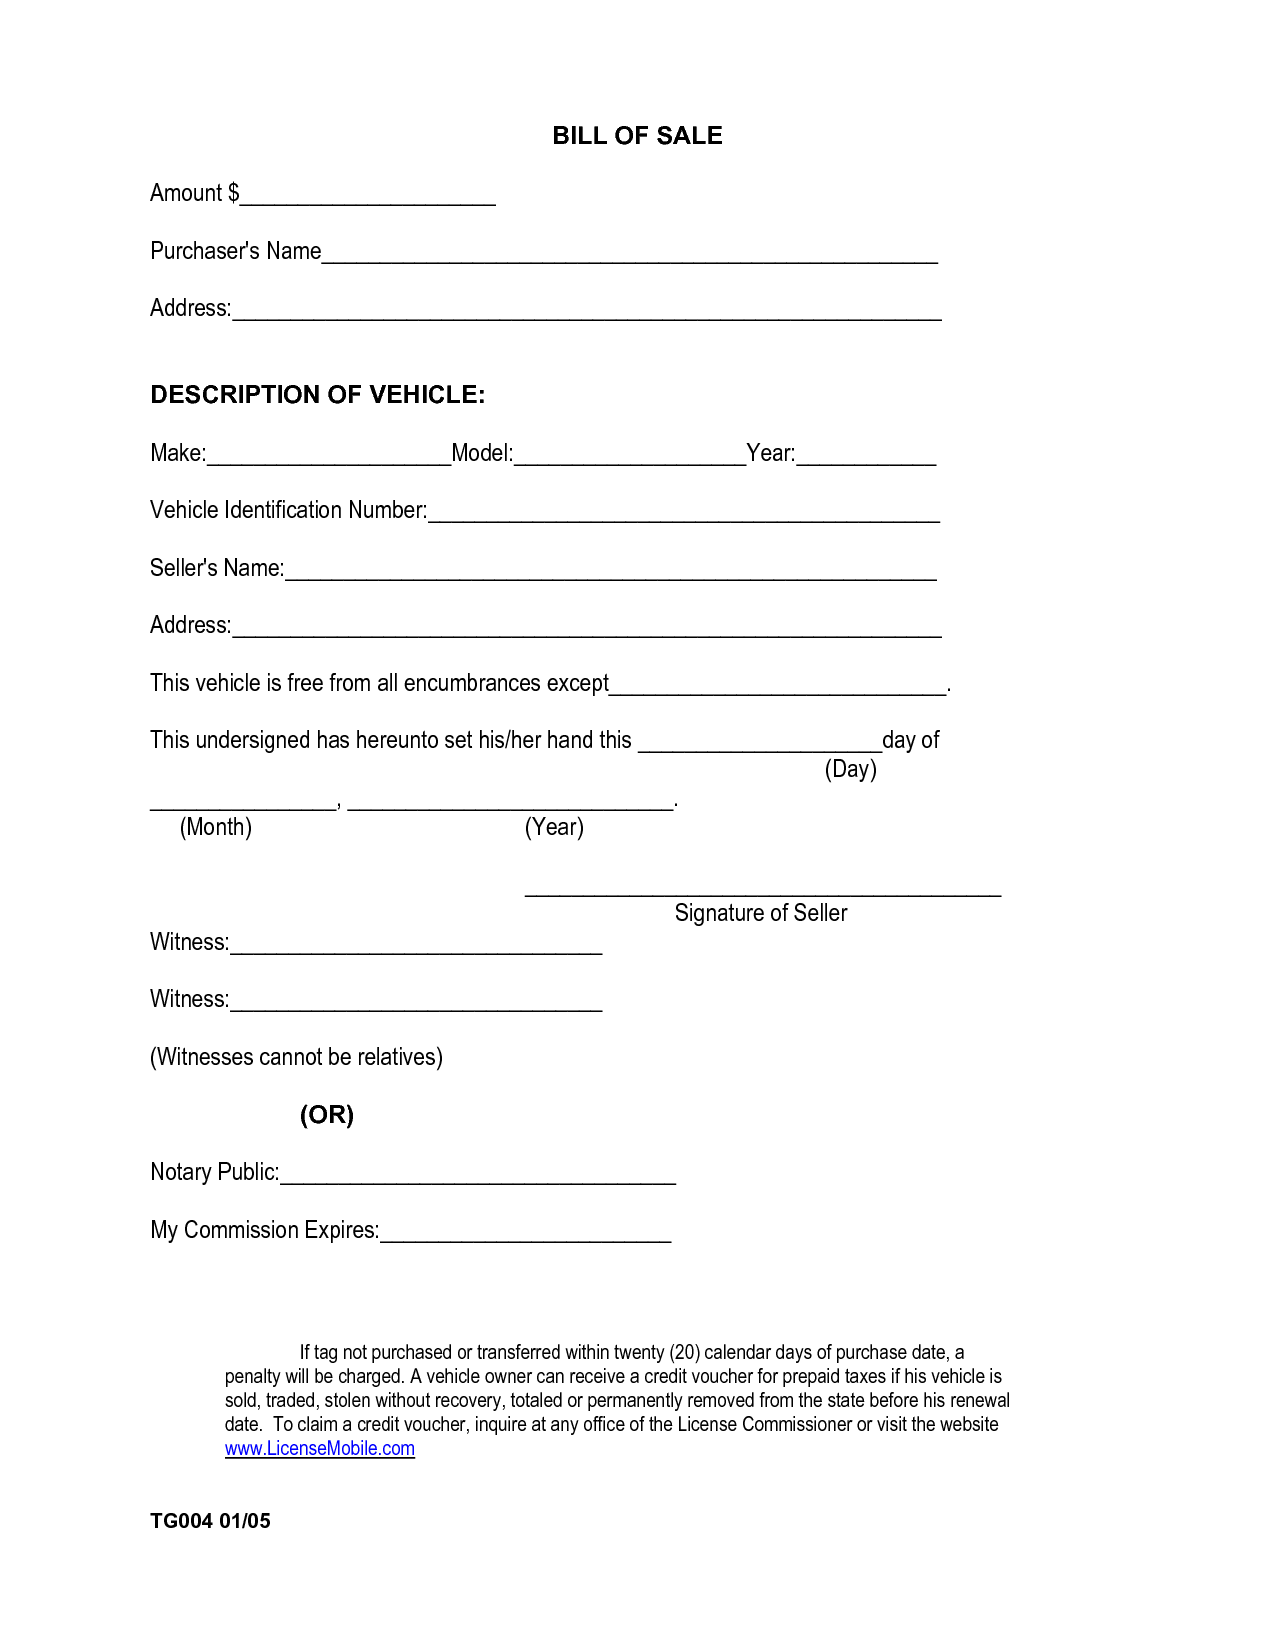 Sample Of A Bill Of Sale for An Automobile and Printable Sample Car Bill Of Sale form Laywers Template forms